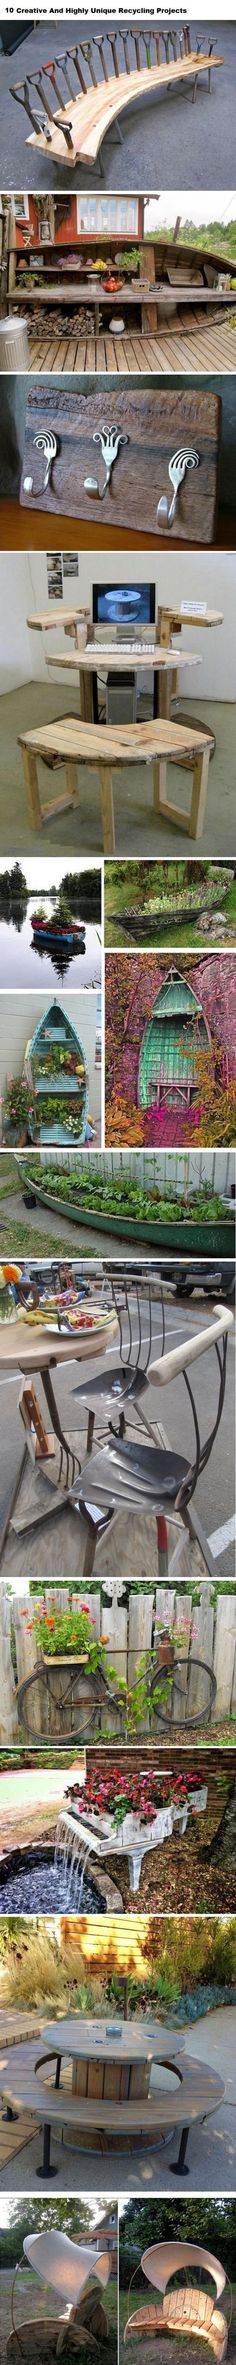 10 Creative And Highly Unique Recycling Projects